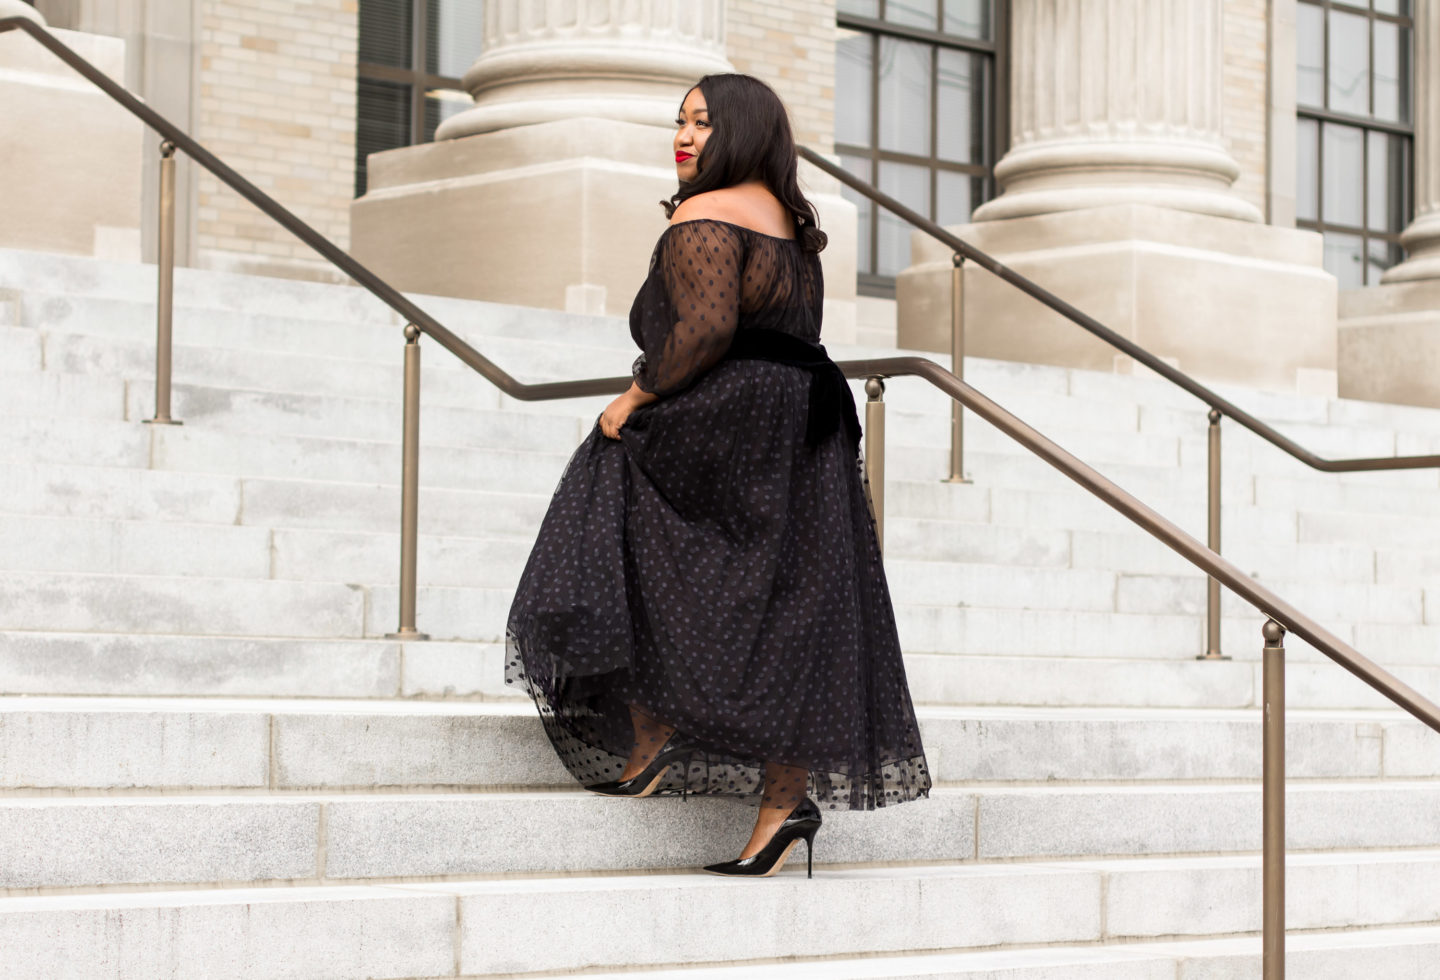 445ac683933 Plus Size Tulle Skirt Outfit Idea for Holidays - Shapely Chic Sheri - Plus  Size Fashion Blog for Curvy Women